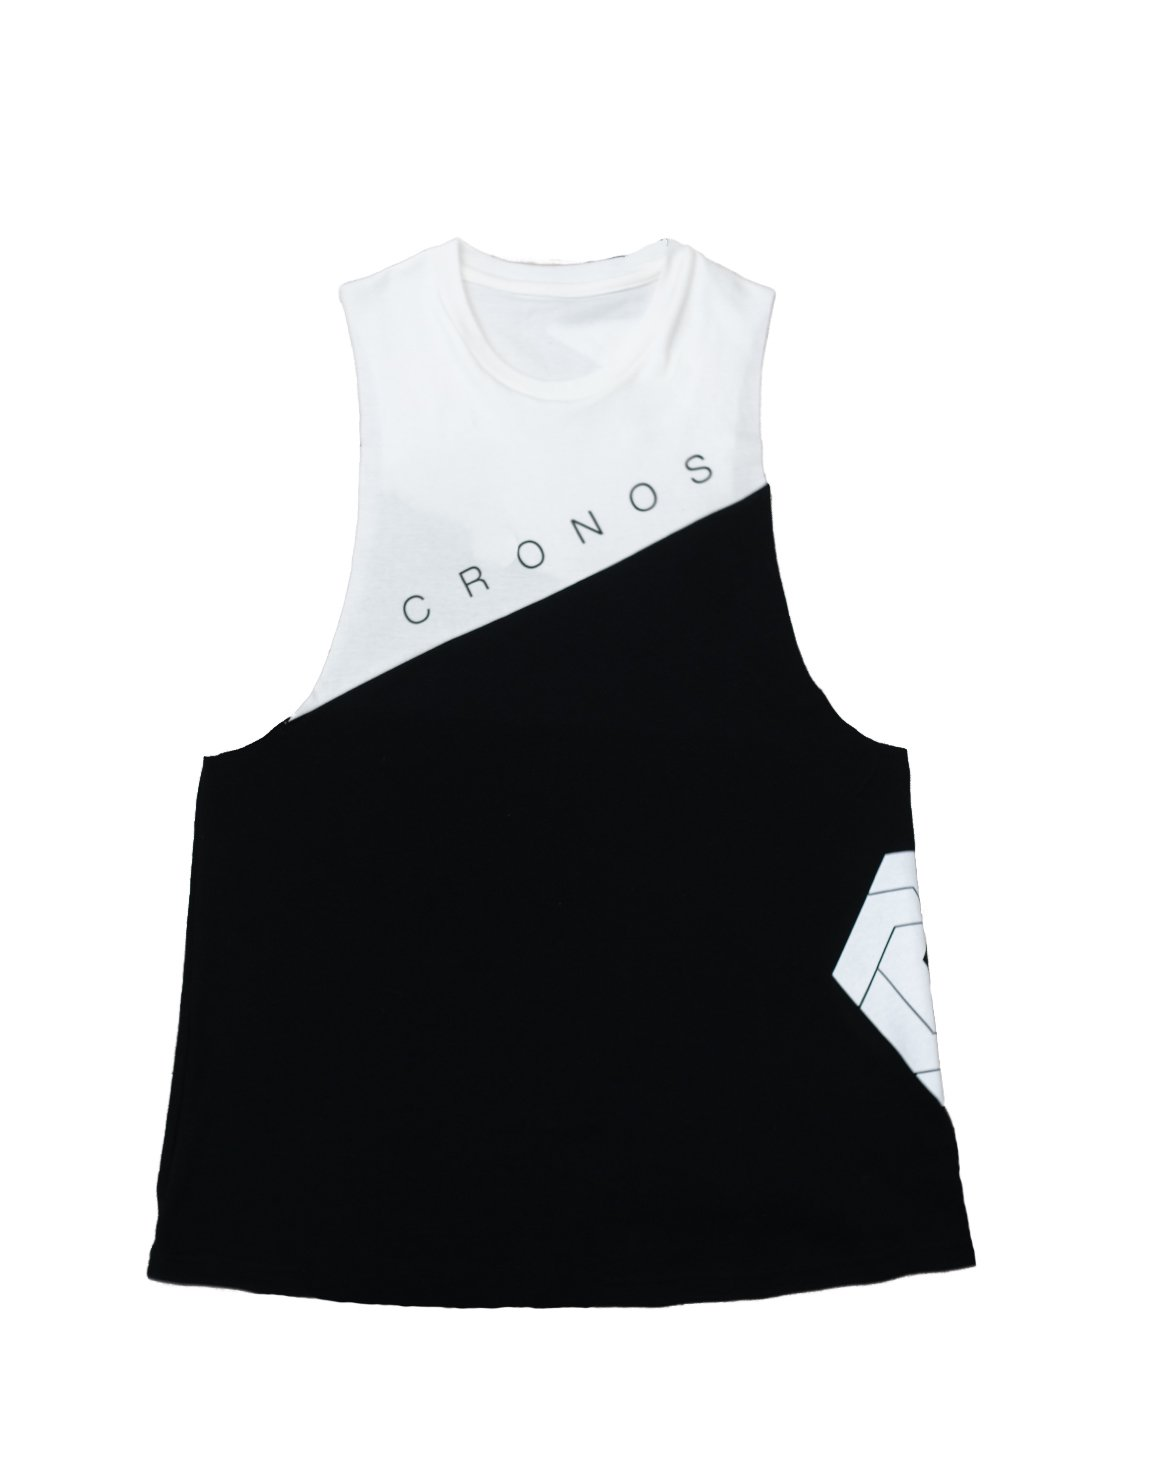 <img class='new_mark_img1' src='https://img.shop-pro.jp/img/new/icons55.gif' style='border:none;display:inline;margin:0px;padding:0px;width:auto;' />CRONOS NEW Bi-COLOR TANK TOP【BLACK×WHITE】